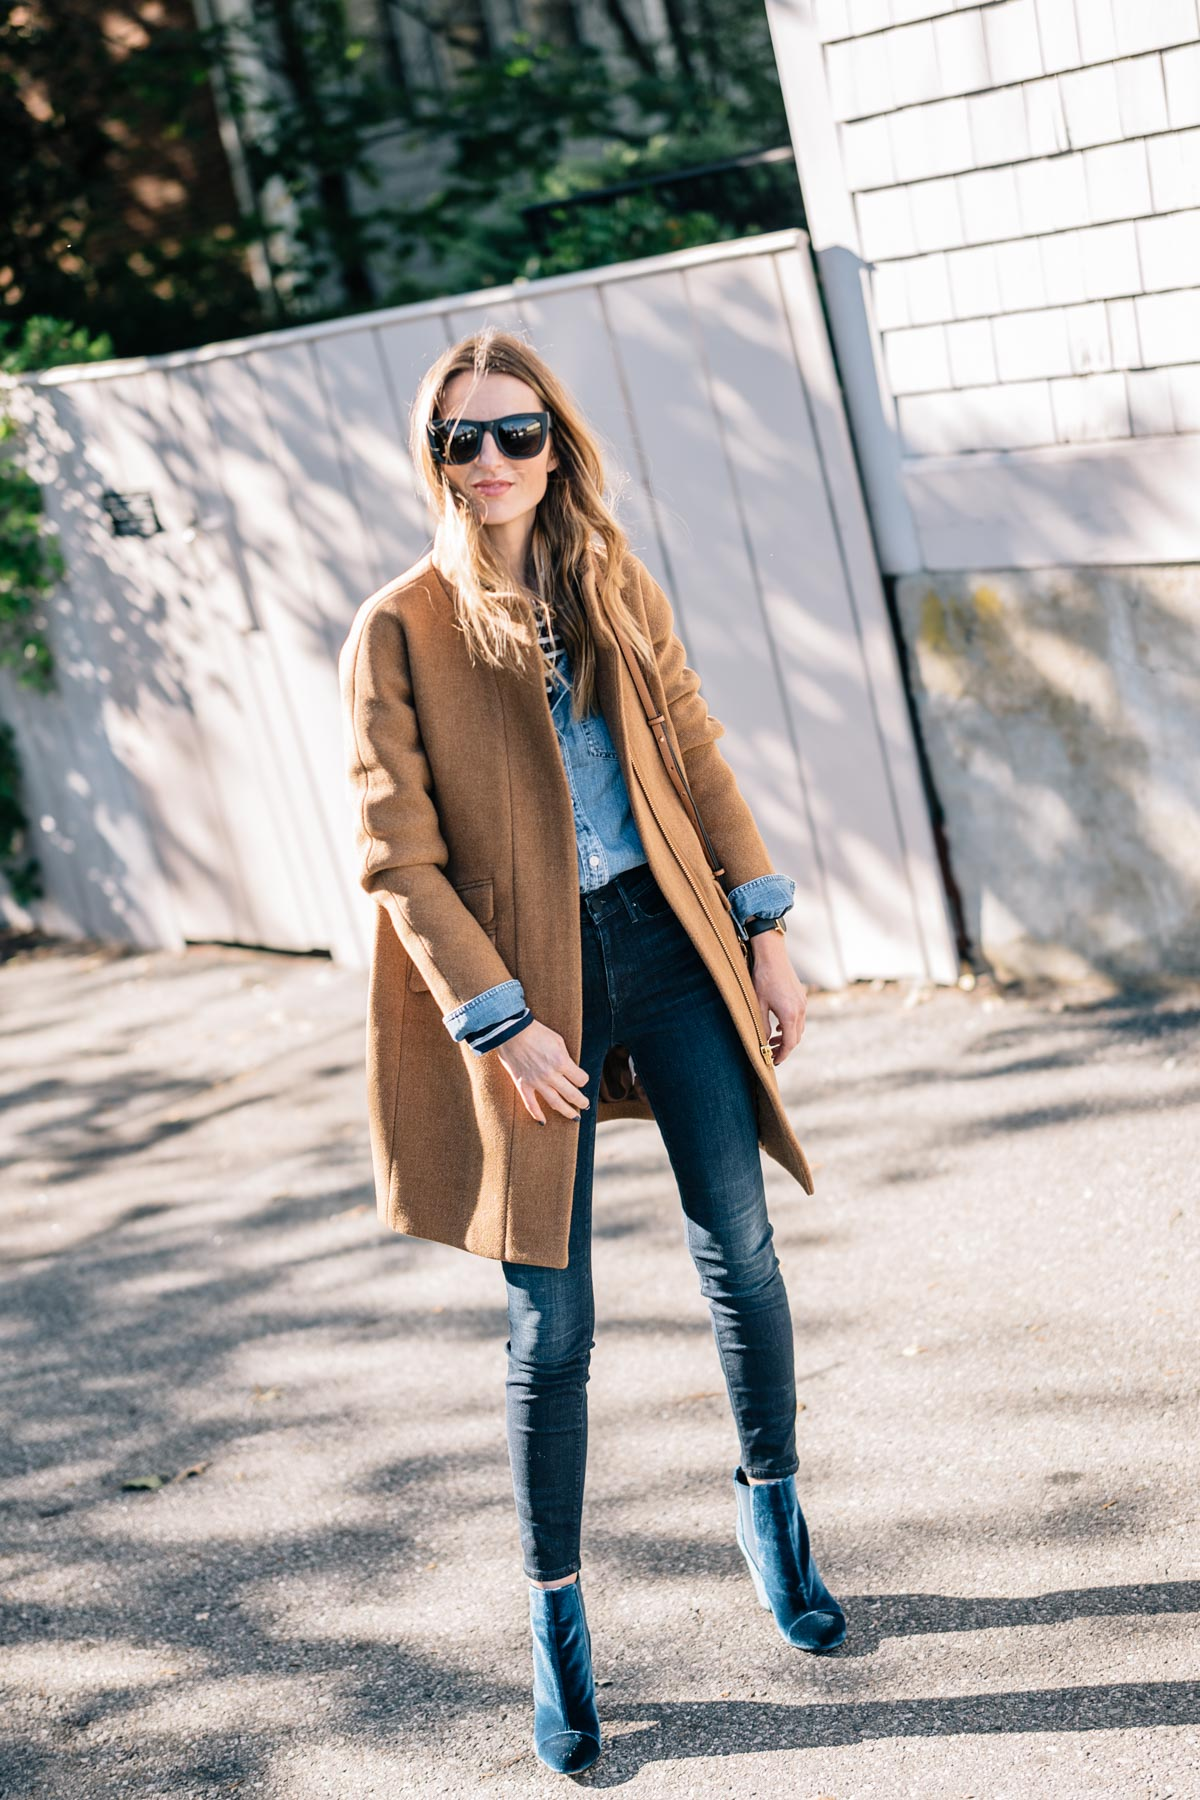 Fall style from Jess Ann Kirby wearing the J.Crew Stadium Cocoon Coat, AYR skinny jeans and velvet booties